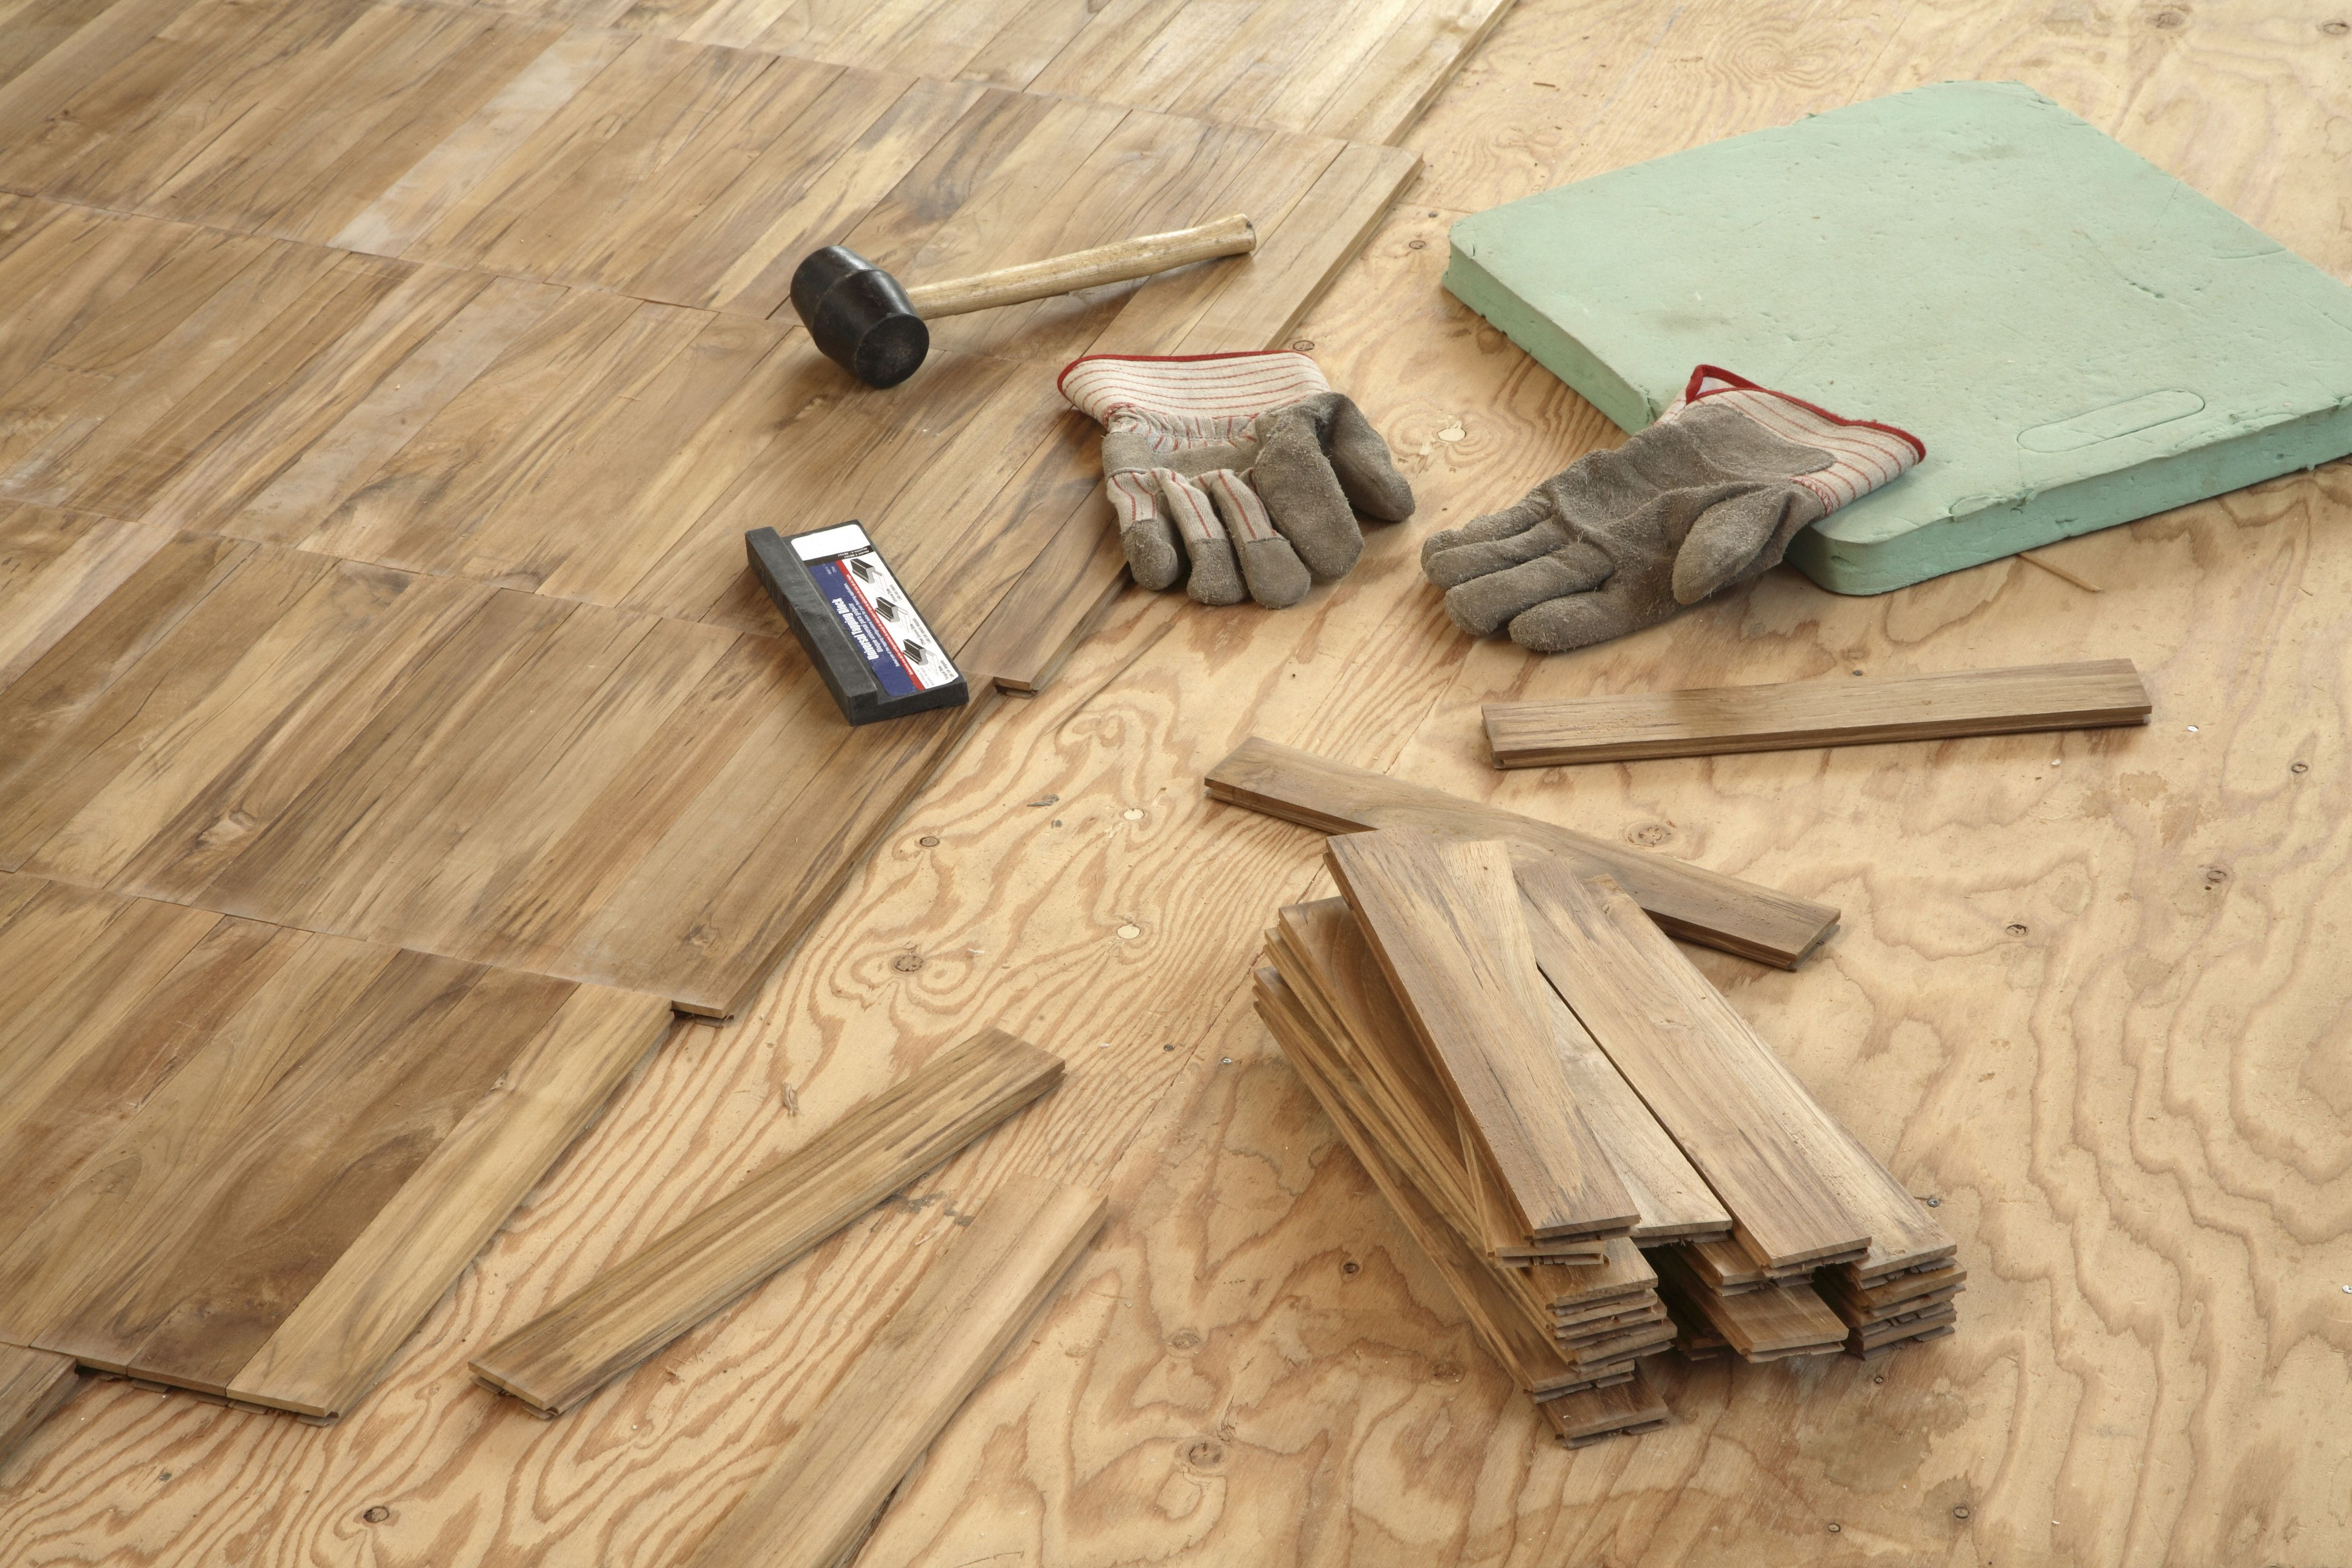 hardwood floor sound barrier of plywood underlayment pros and cons types and brands with plywoodunderlaymentunderwoodflooring 5ac24fbcae9ab8003781af25